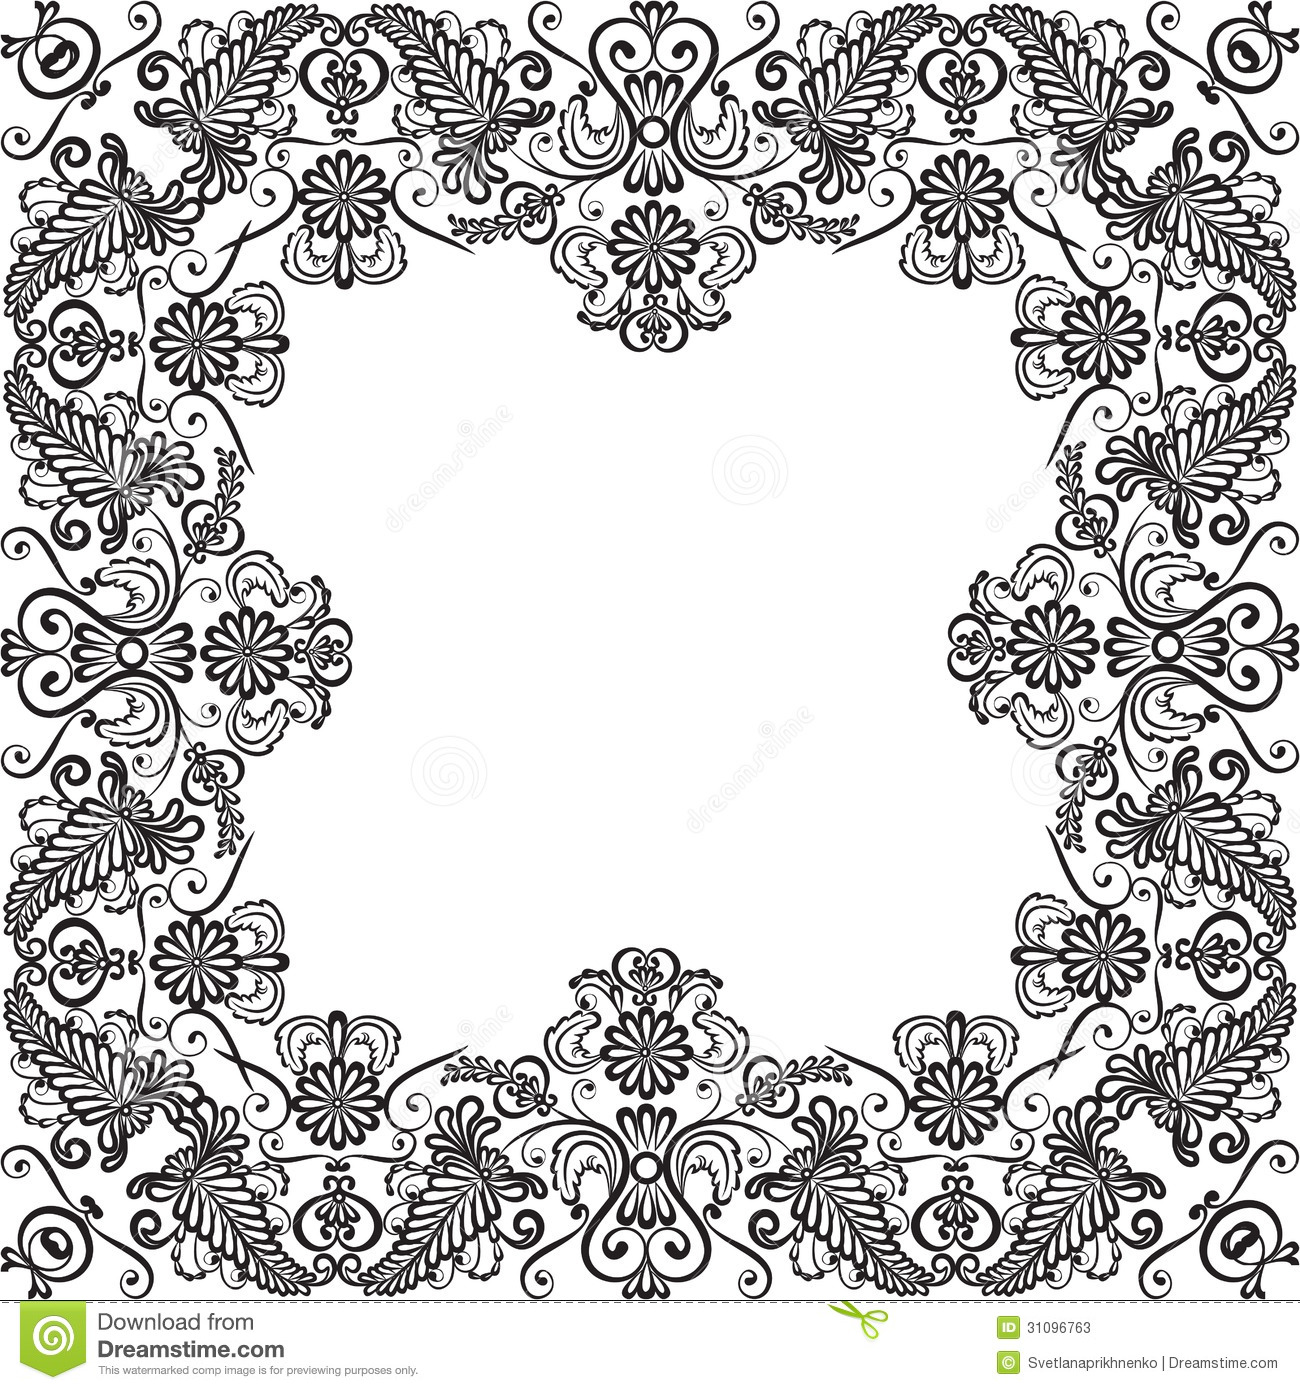 Wedding invitation or greeting card with lace floral frame.